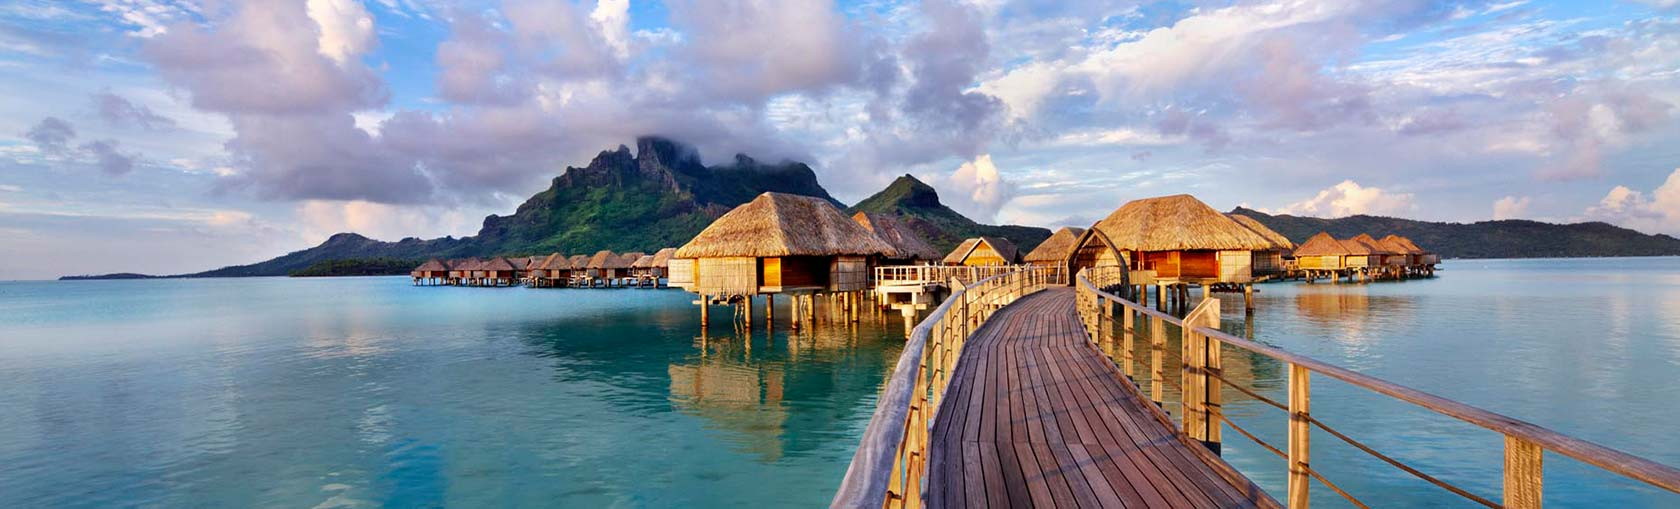 Over Water Bungalows - Luxury Accommodation